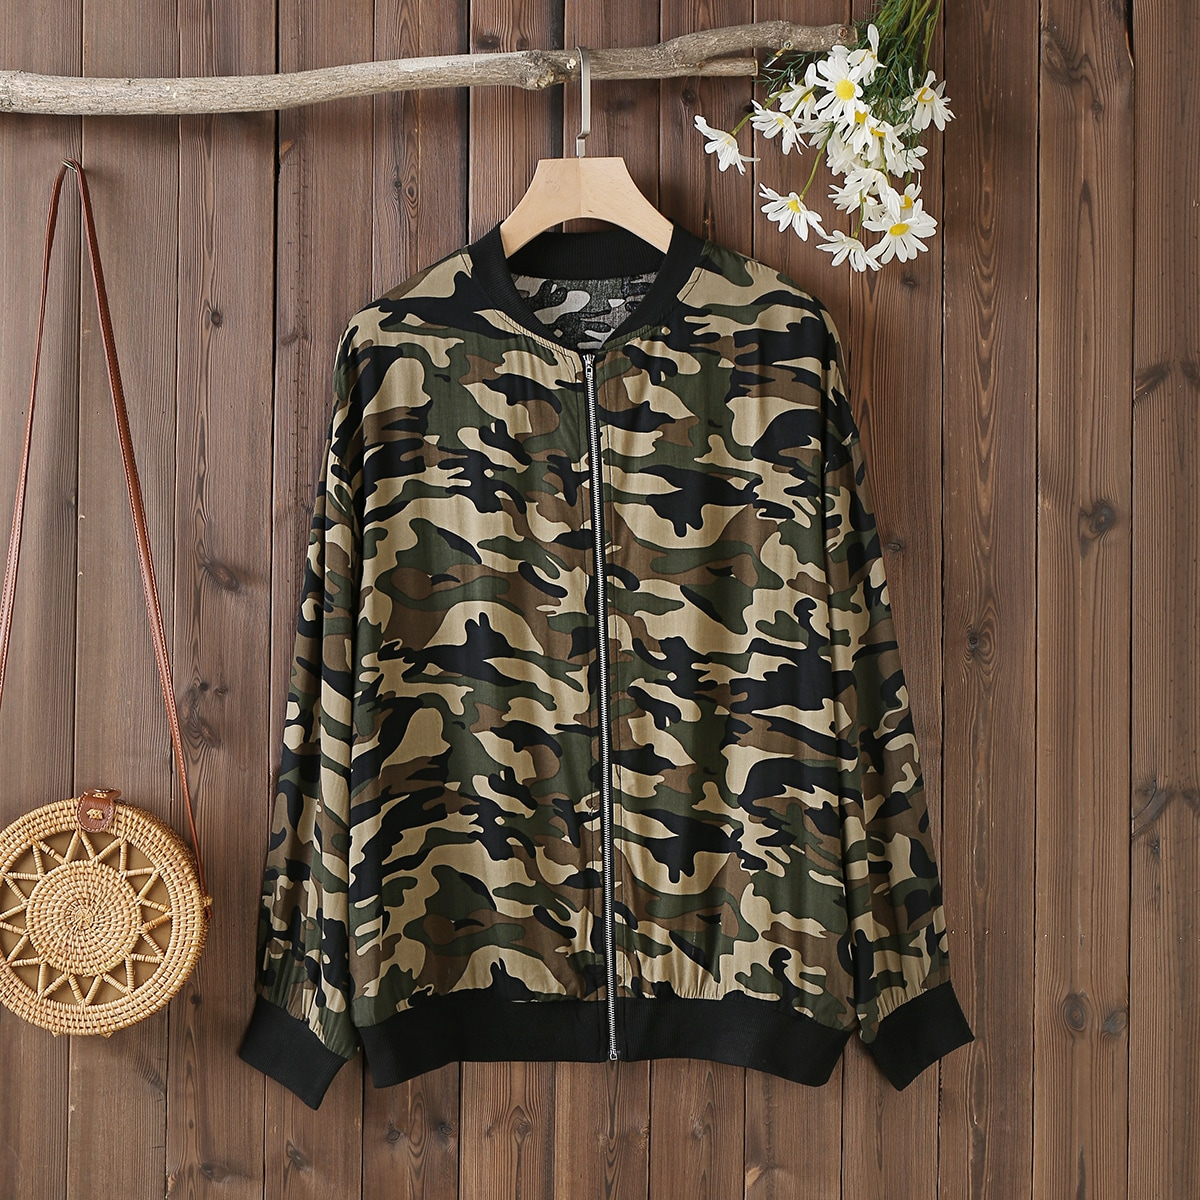 SHEIN Casual Camouflage Grote maat: jas Rits